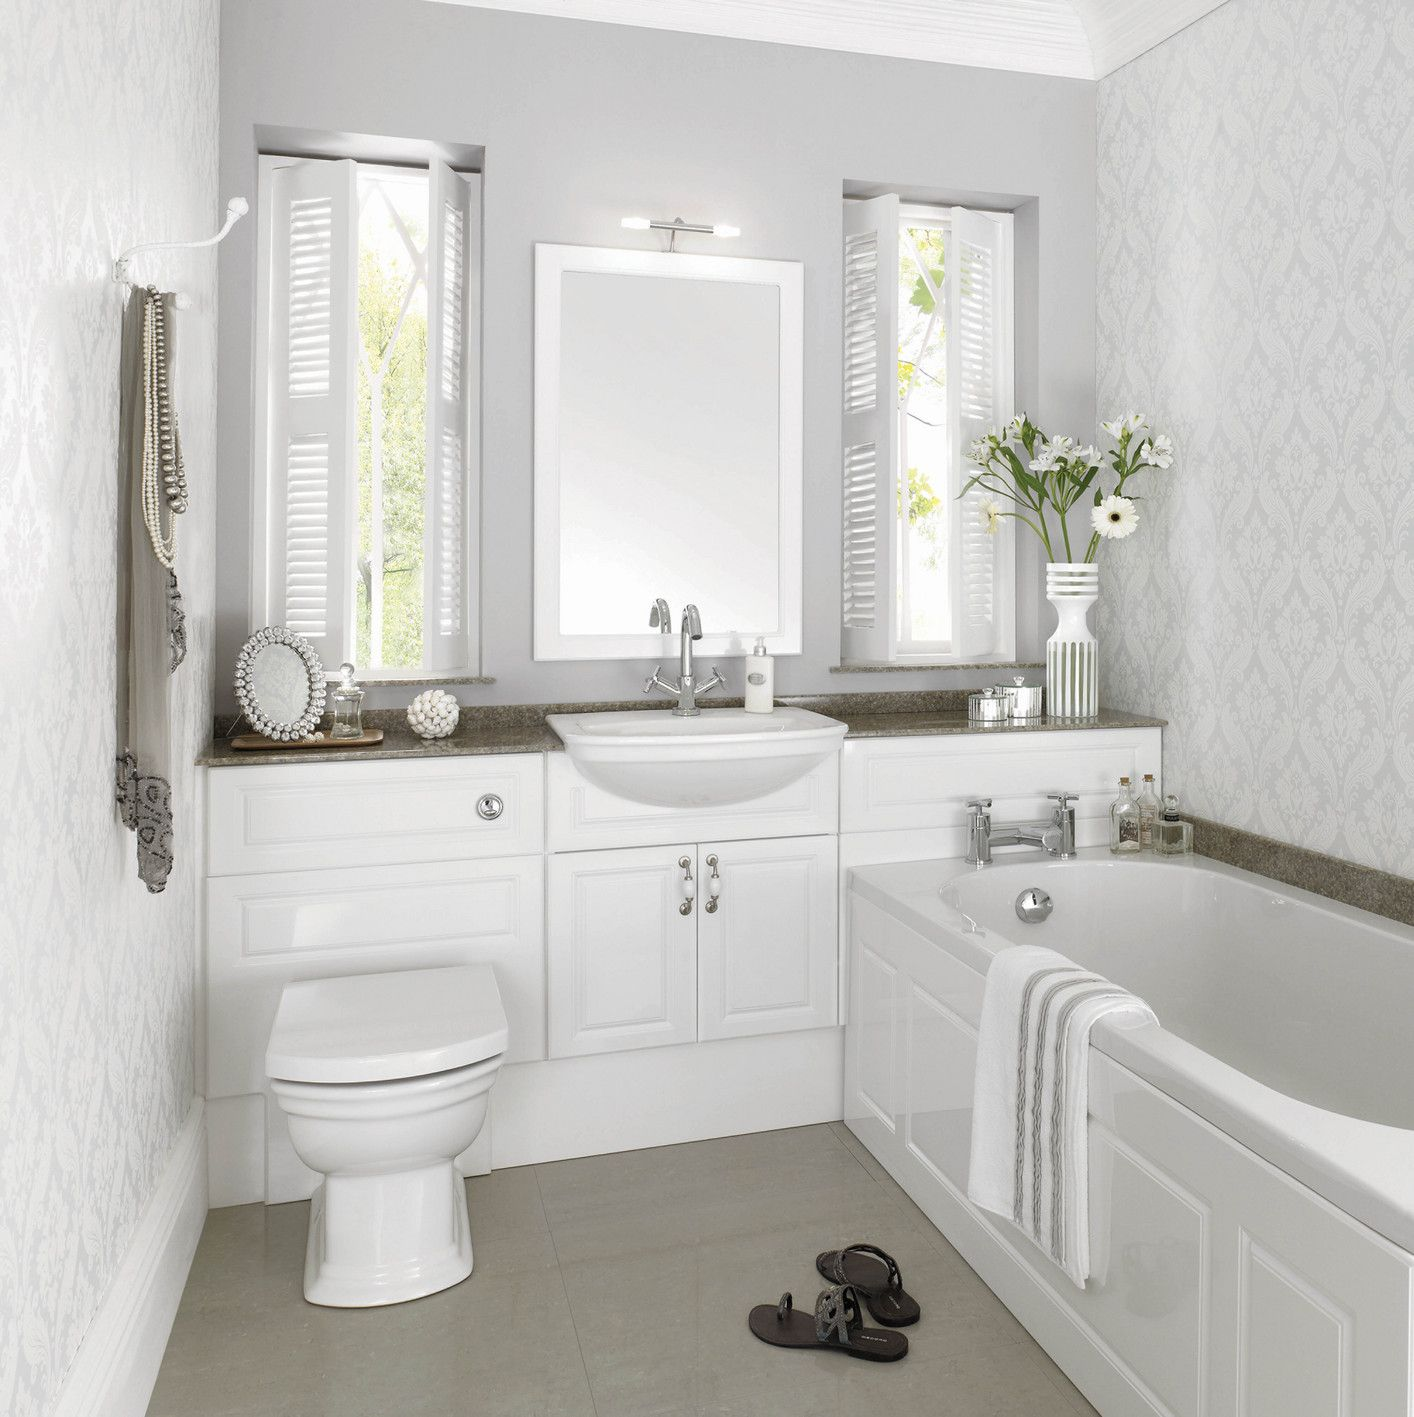 aegean gloss white main rgb0e57jpg 14141417 pixels fitted bathroom - Fitted Bathroom Ideas